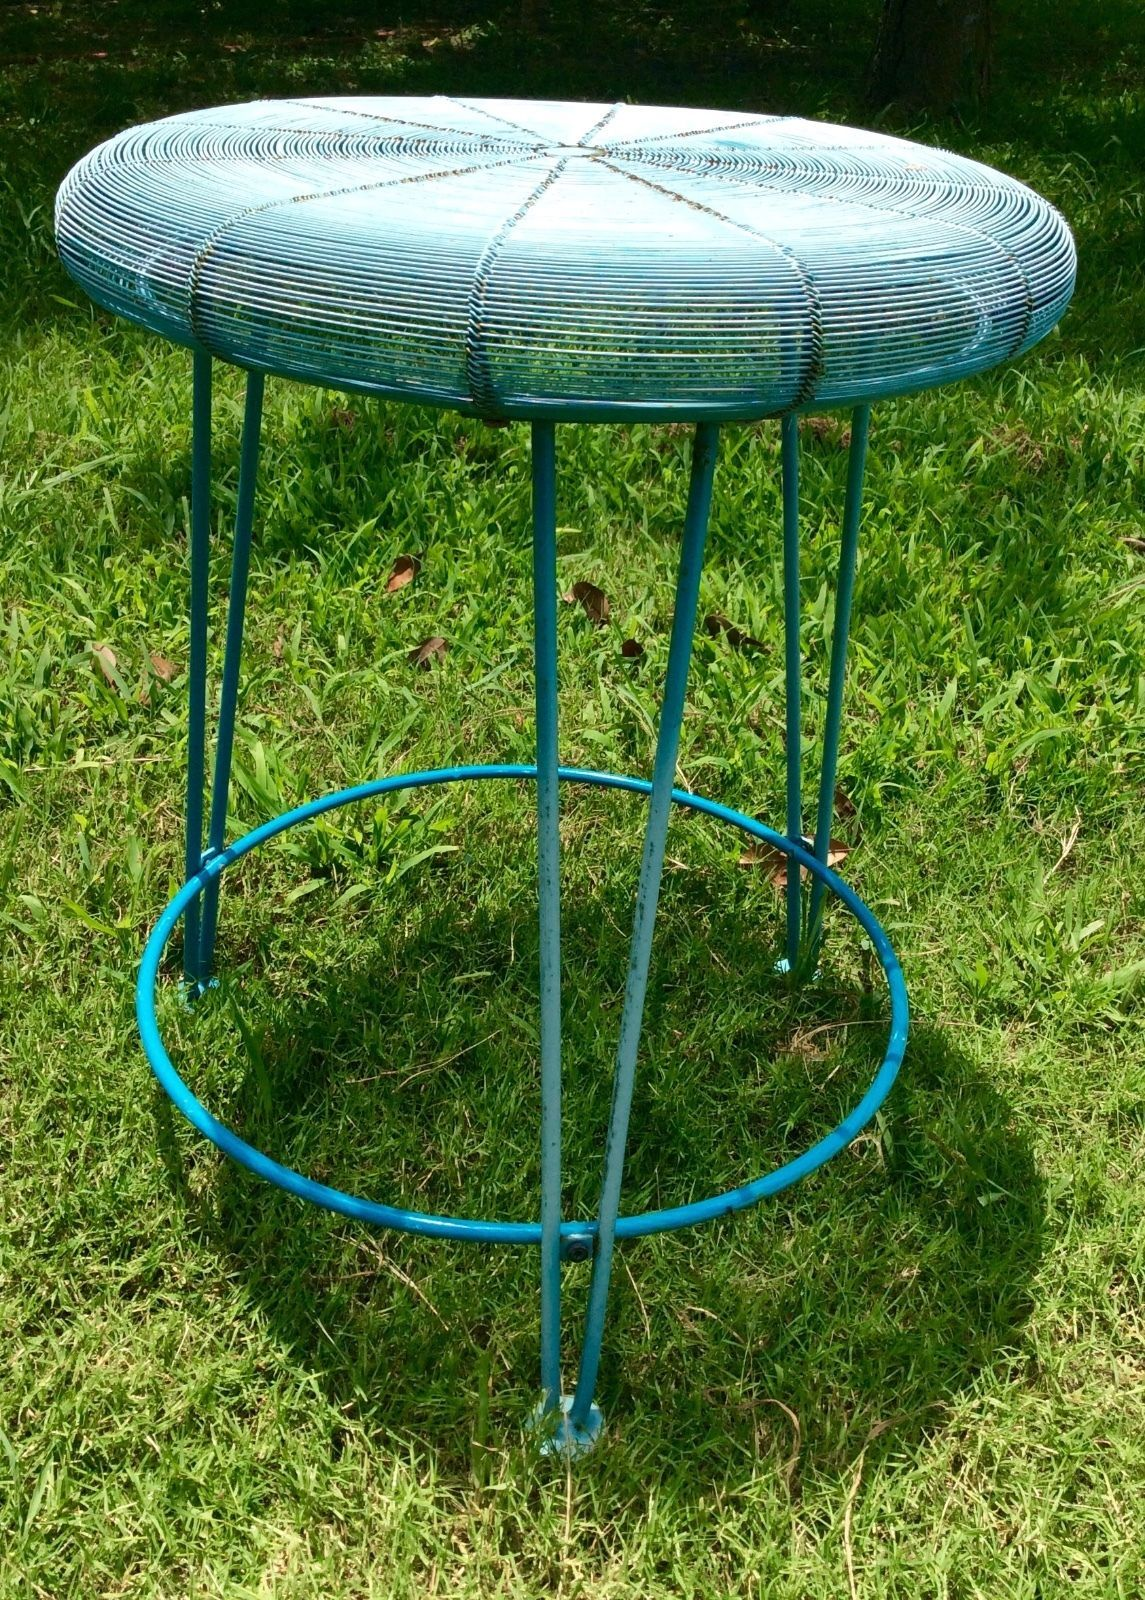 Vintage patio Wrought Iron Hairpin Leg Table plant Stand Mid Century Modern